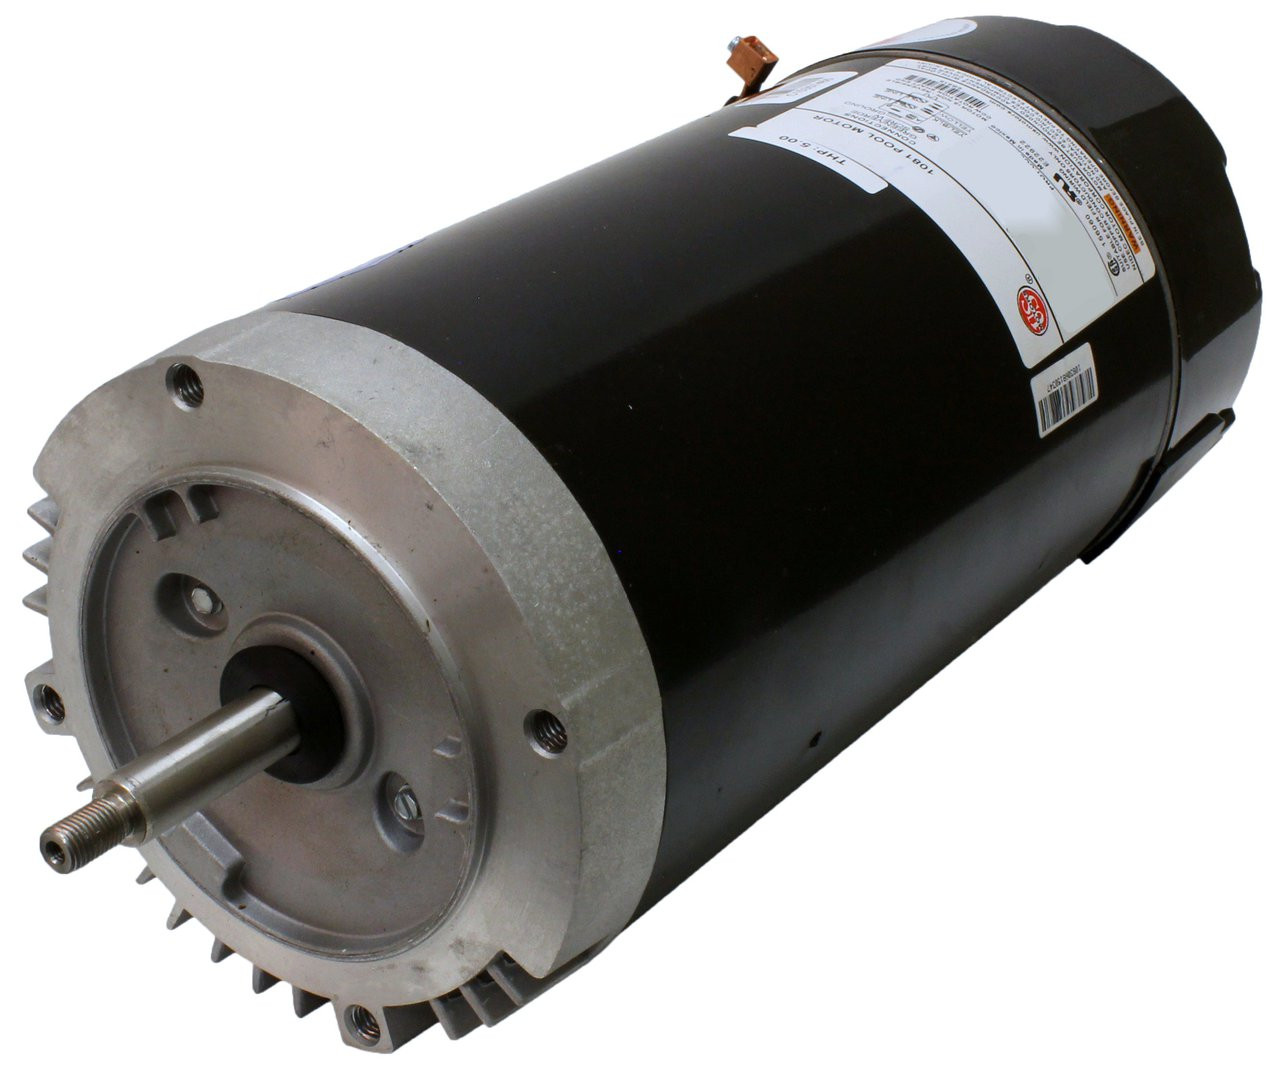 hight resolution of 1 hp 3450 rpm 56j frame 115 230v switchless swimming pool pump motor us electric